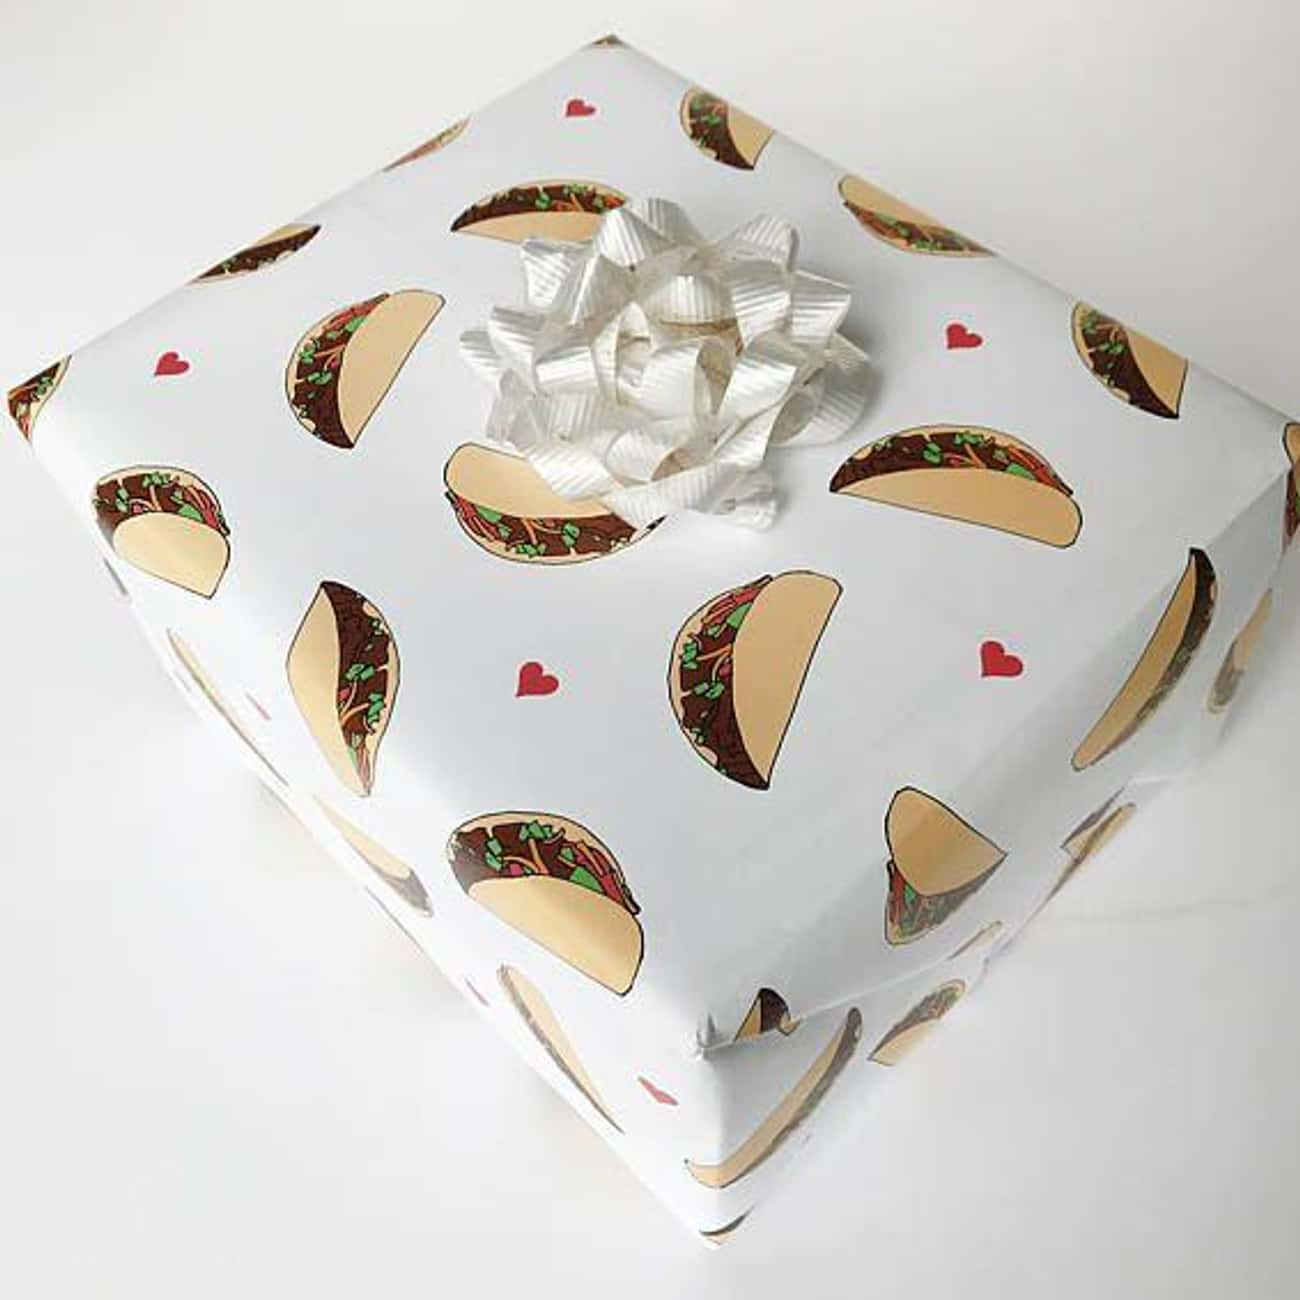 Taco Wrapping Paper is listed (or ranked) 3 on the list These Delightful Wrapping Papers Will Make You Want To Leave Your Gifts Under The Tree All Year Long